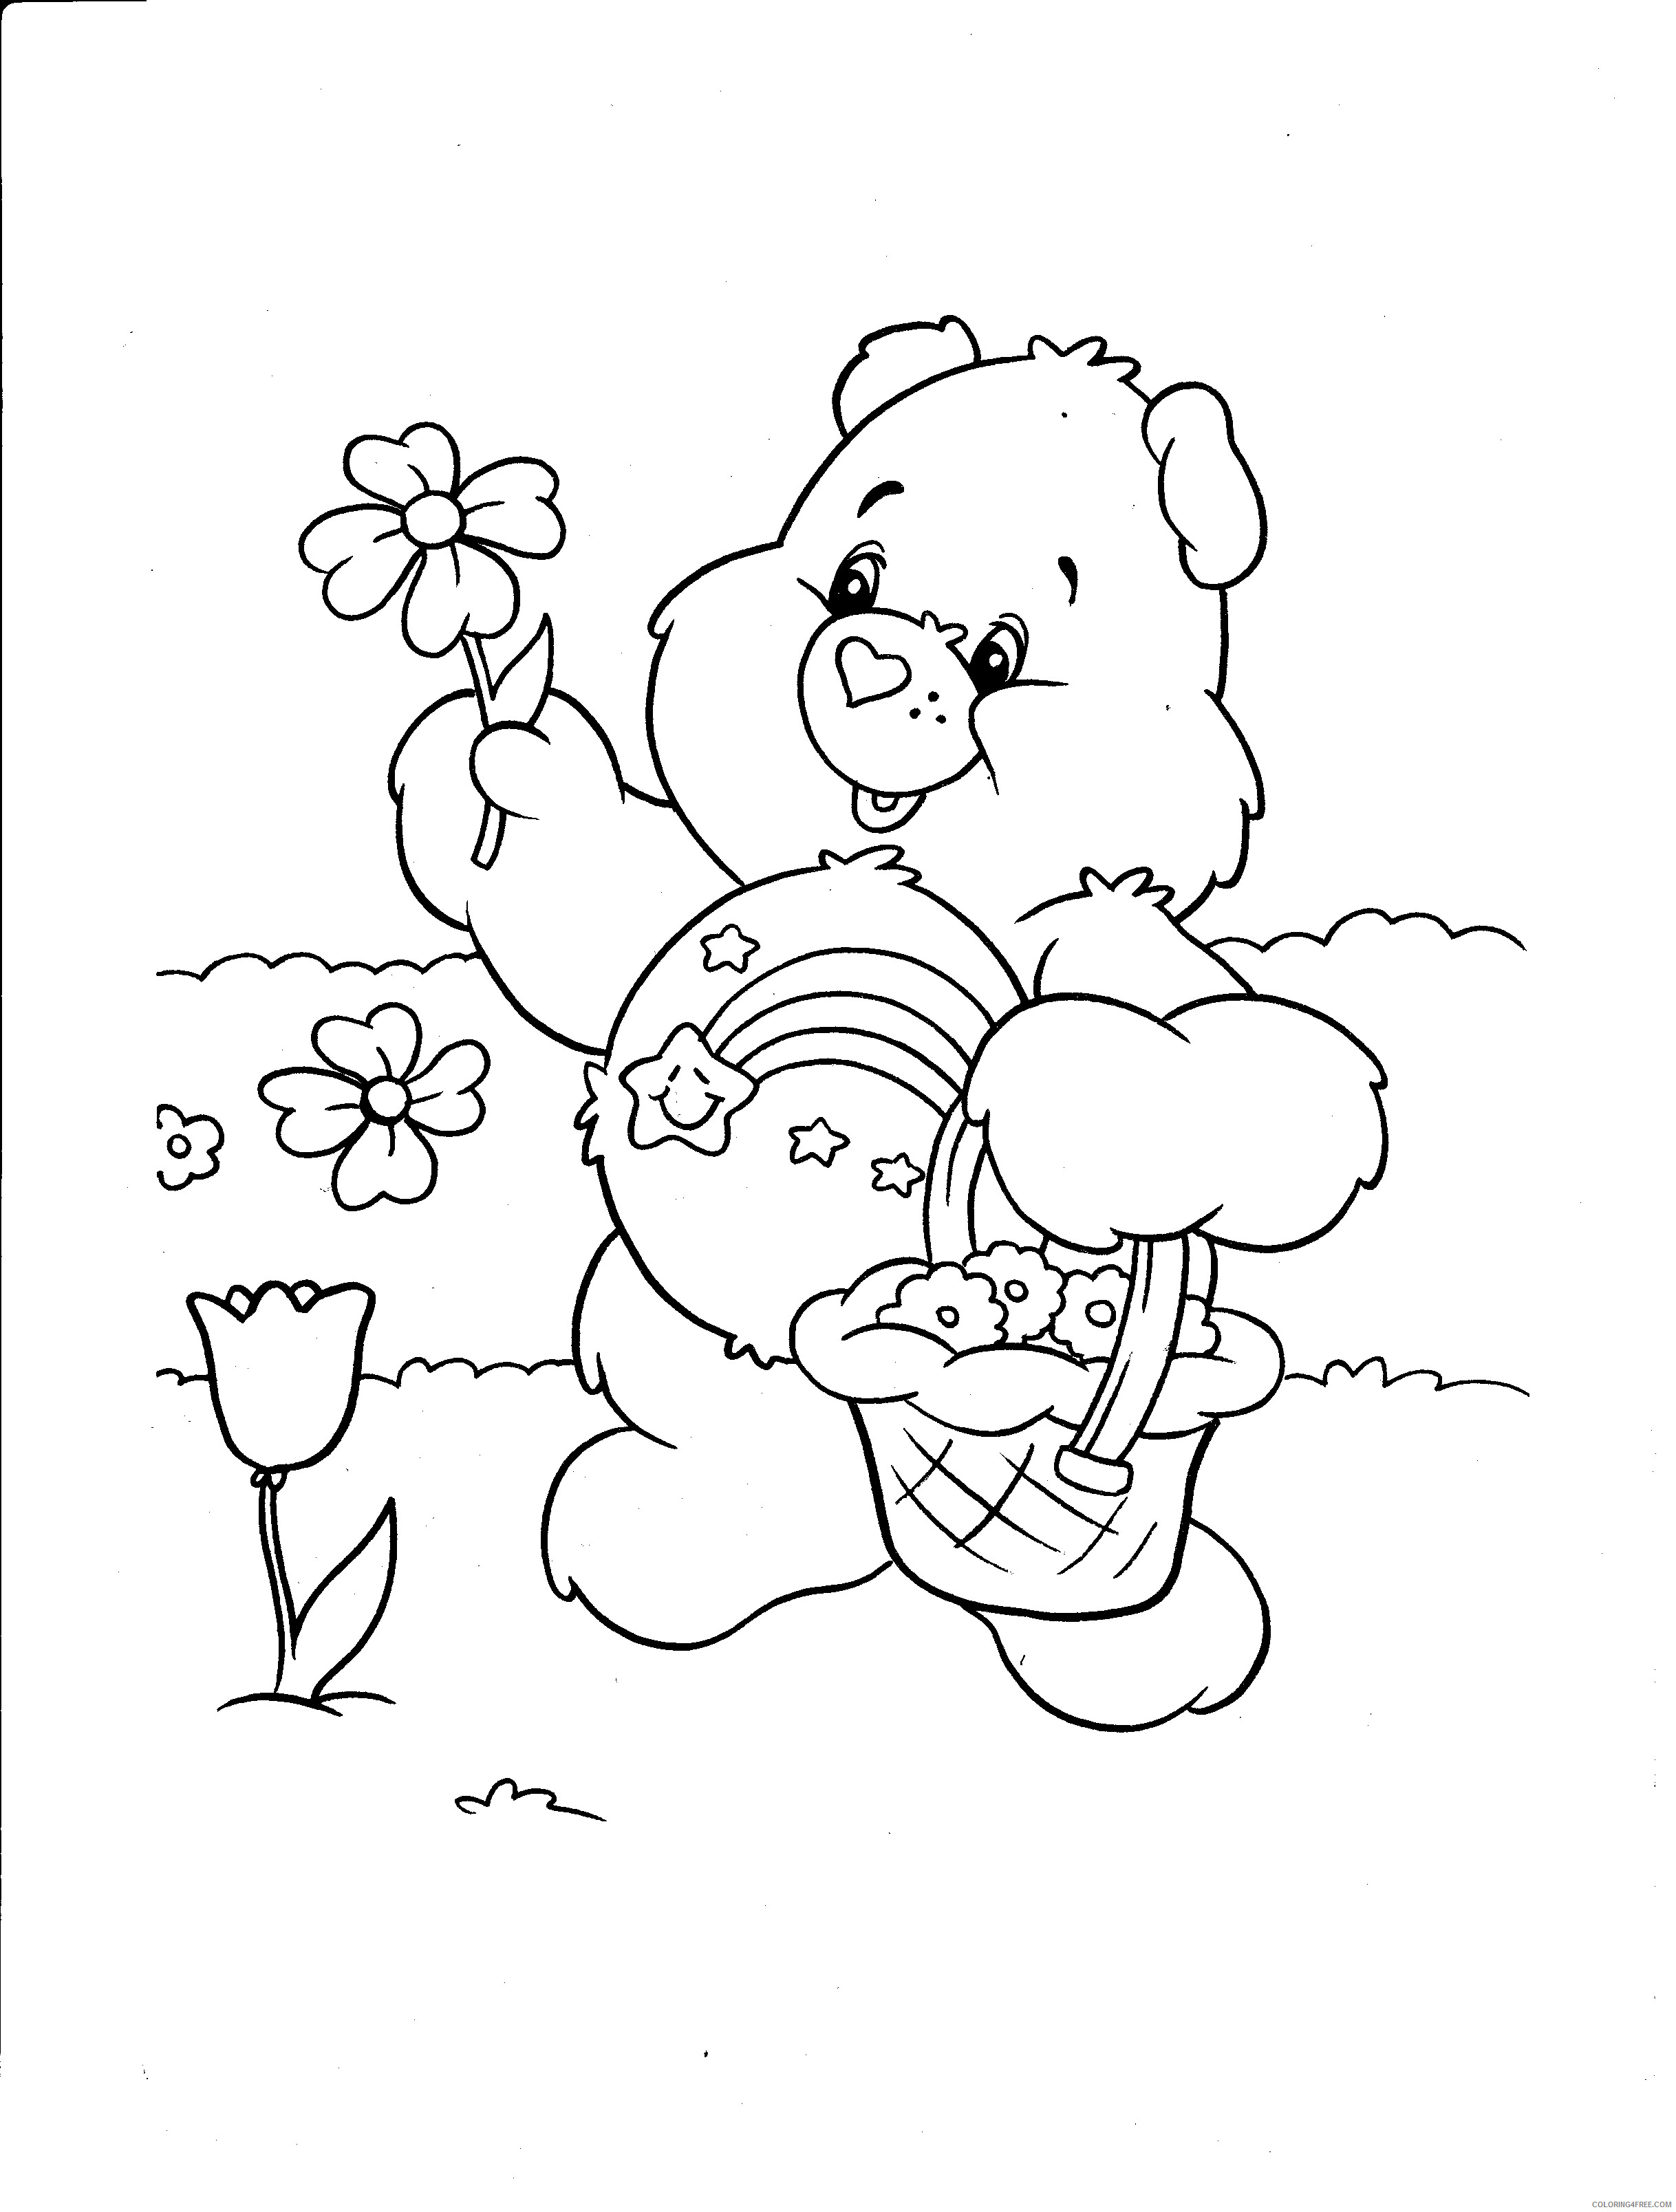 Care Bears Coloring Pages Cartoons Free Care Bear Printable 2020 1608 Coloring4free Coloring4free Com